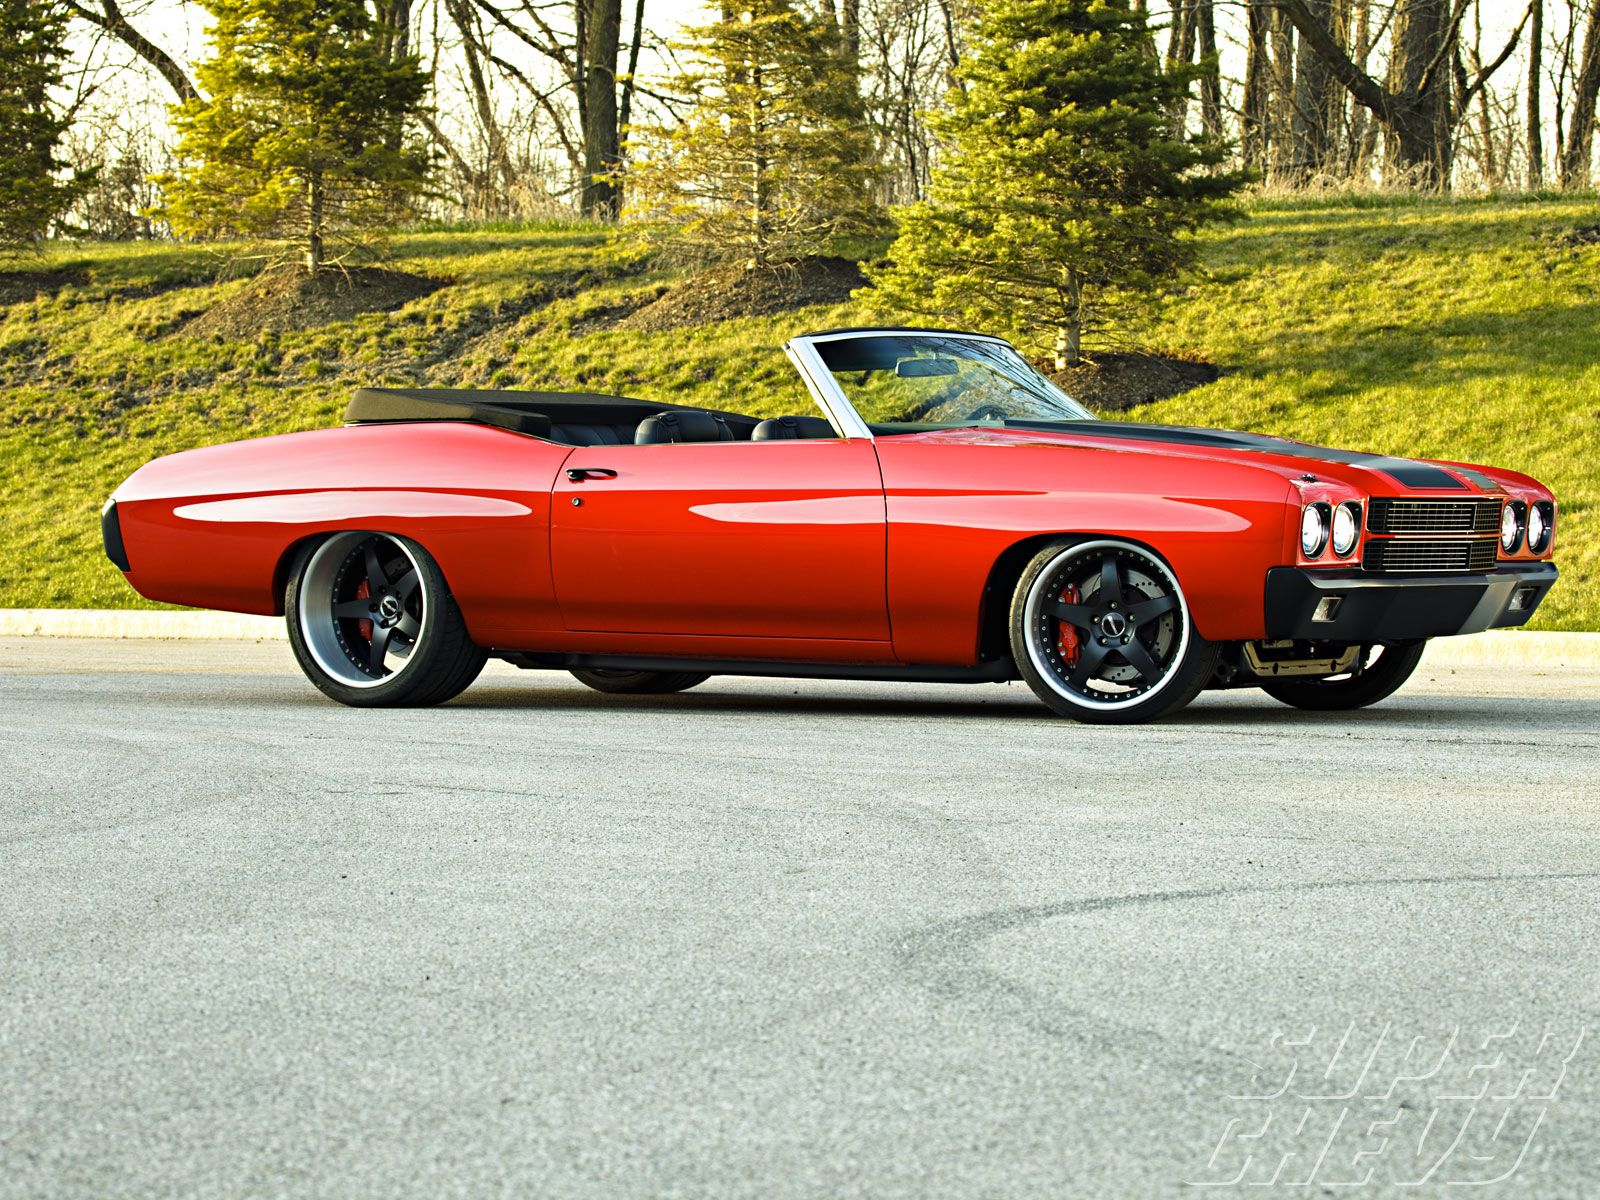 Ted hellard purchased a roadster that he fell in love with from the roadster shop that he had to have another and it came in the form of a 1970 chevelle